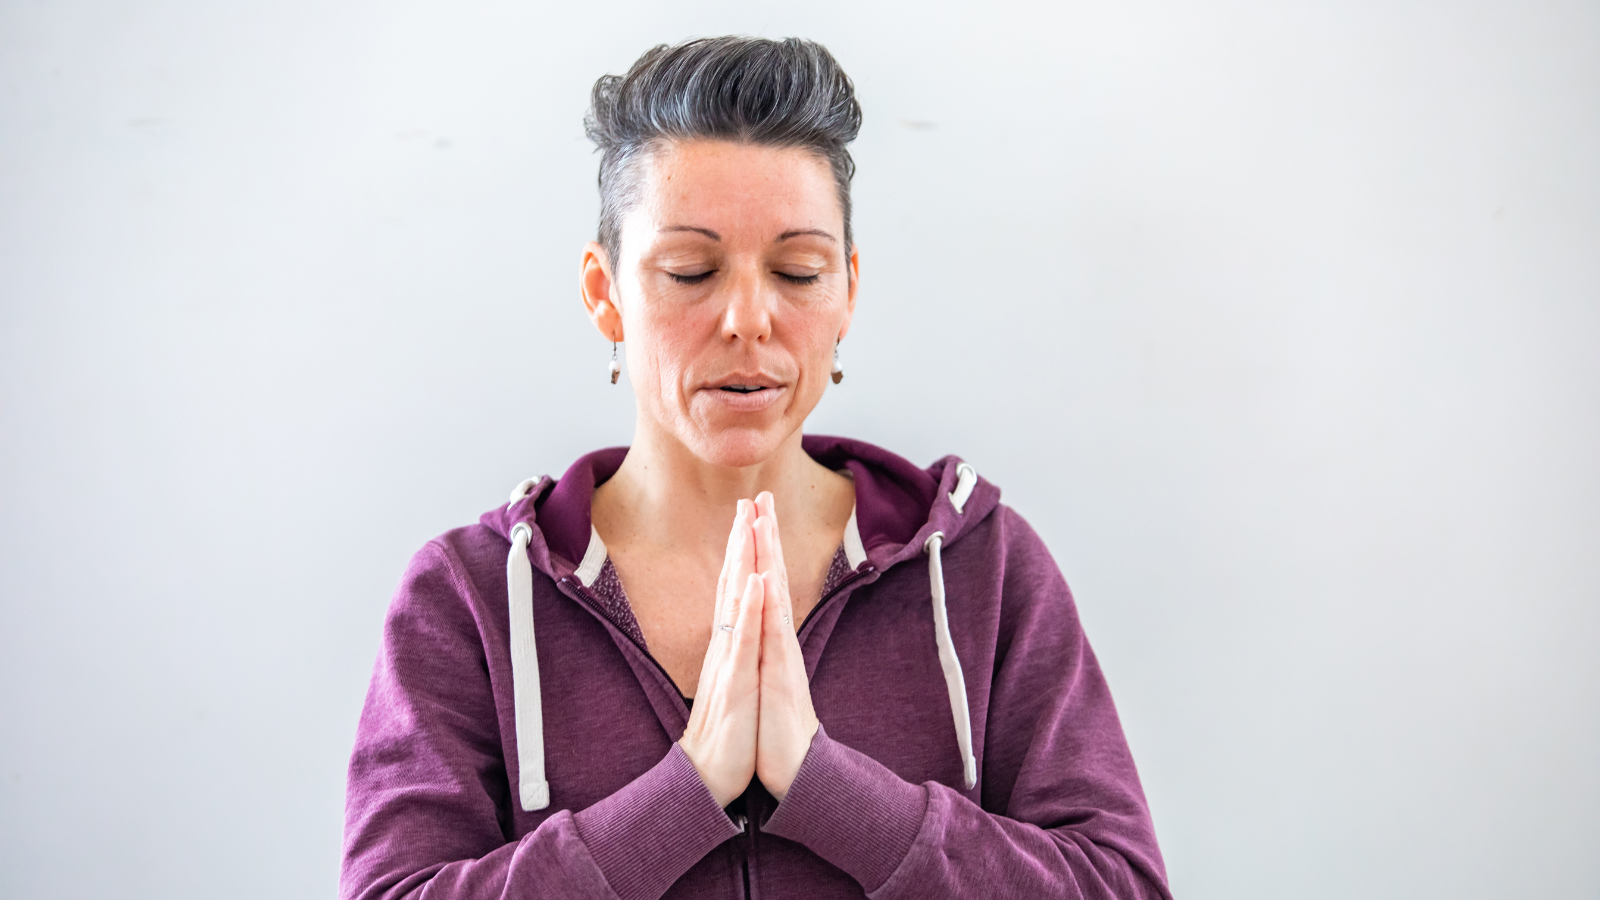 Yoga student experiencing the benefits of connecting the mind and body through the power of the breath